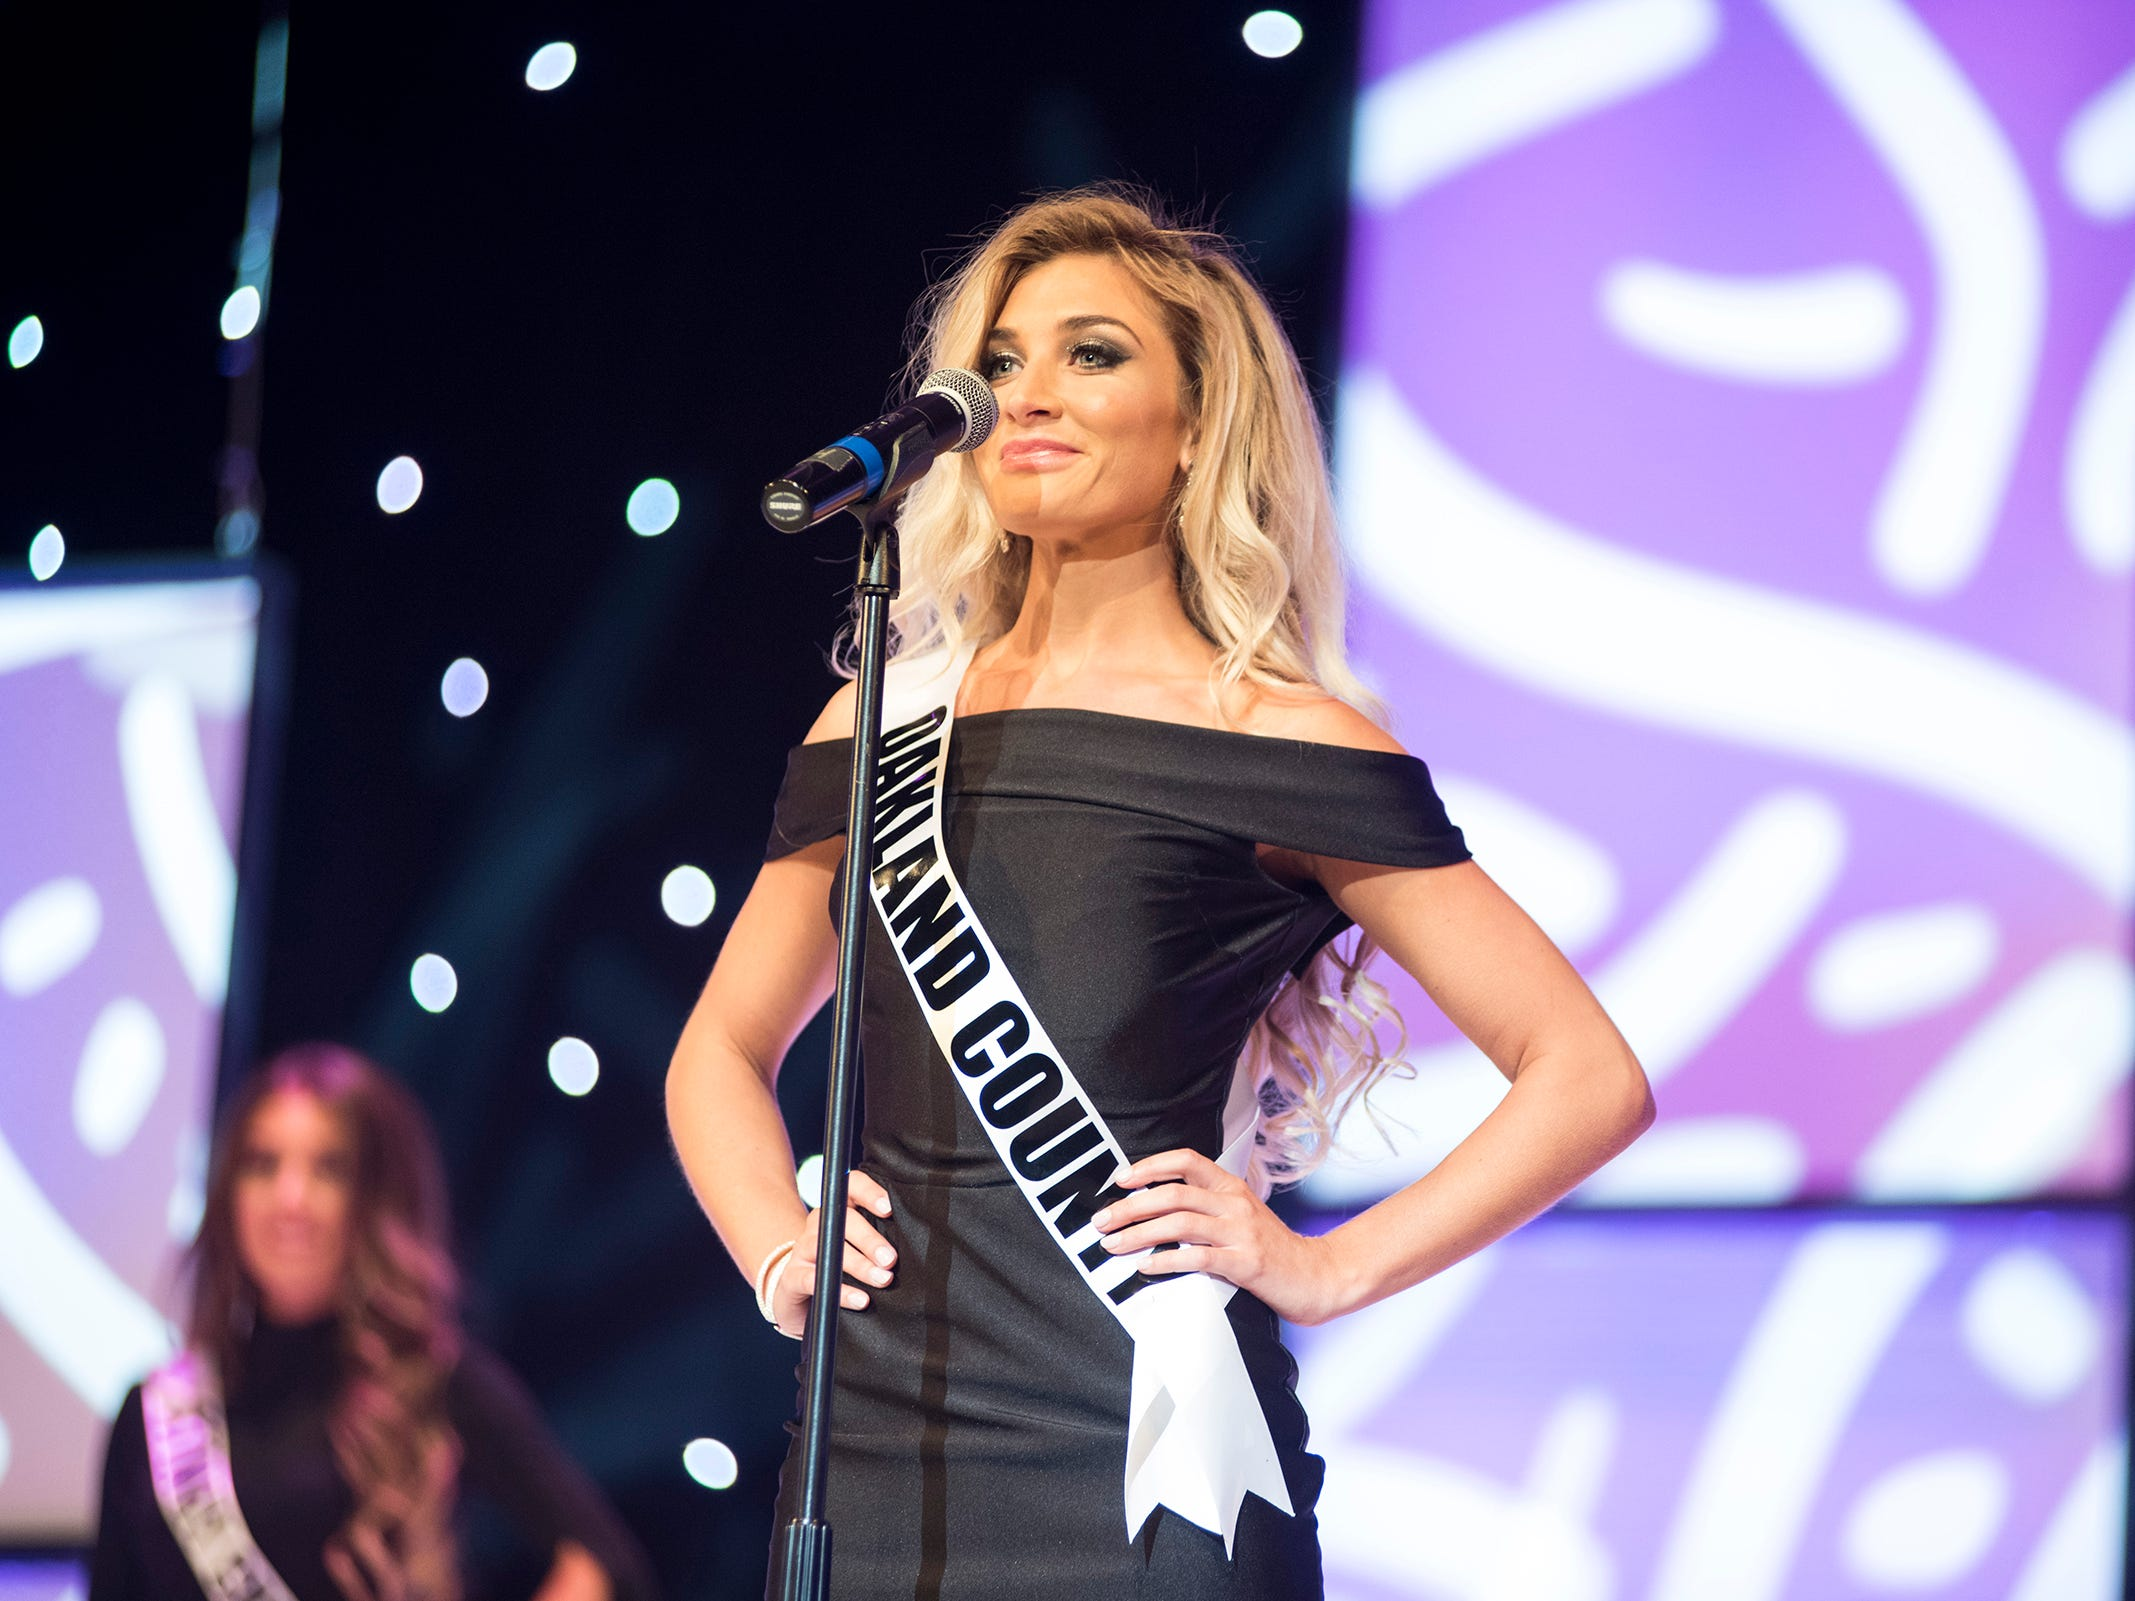 Miss Oakland County Katelyn Curthoys introduces herself Saturday, Sept. 22, 2018 at the start of the Miss Michigan USA competition at McMorran Theater.